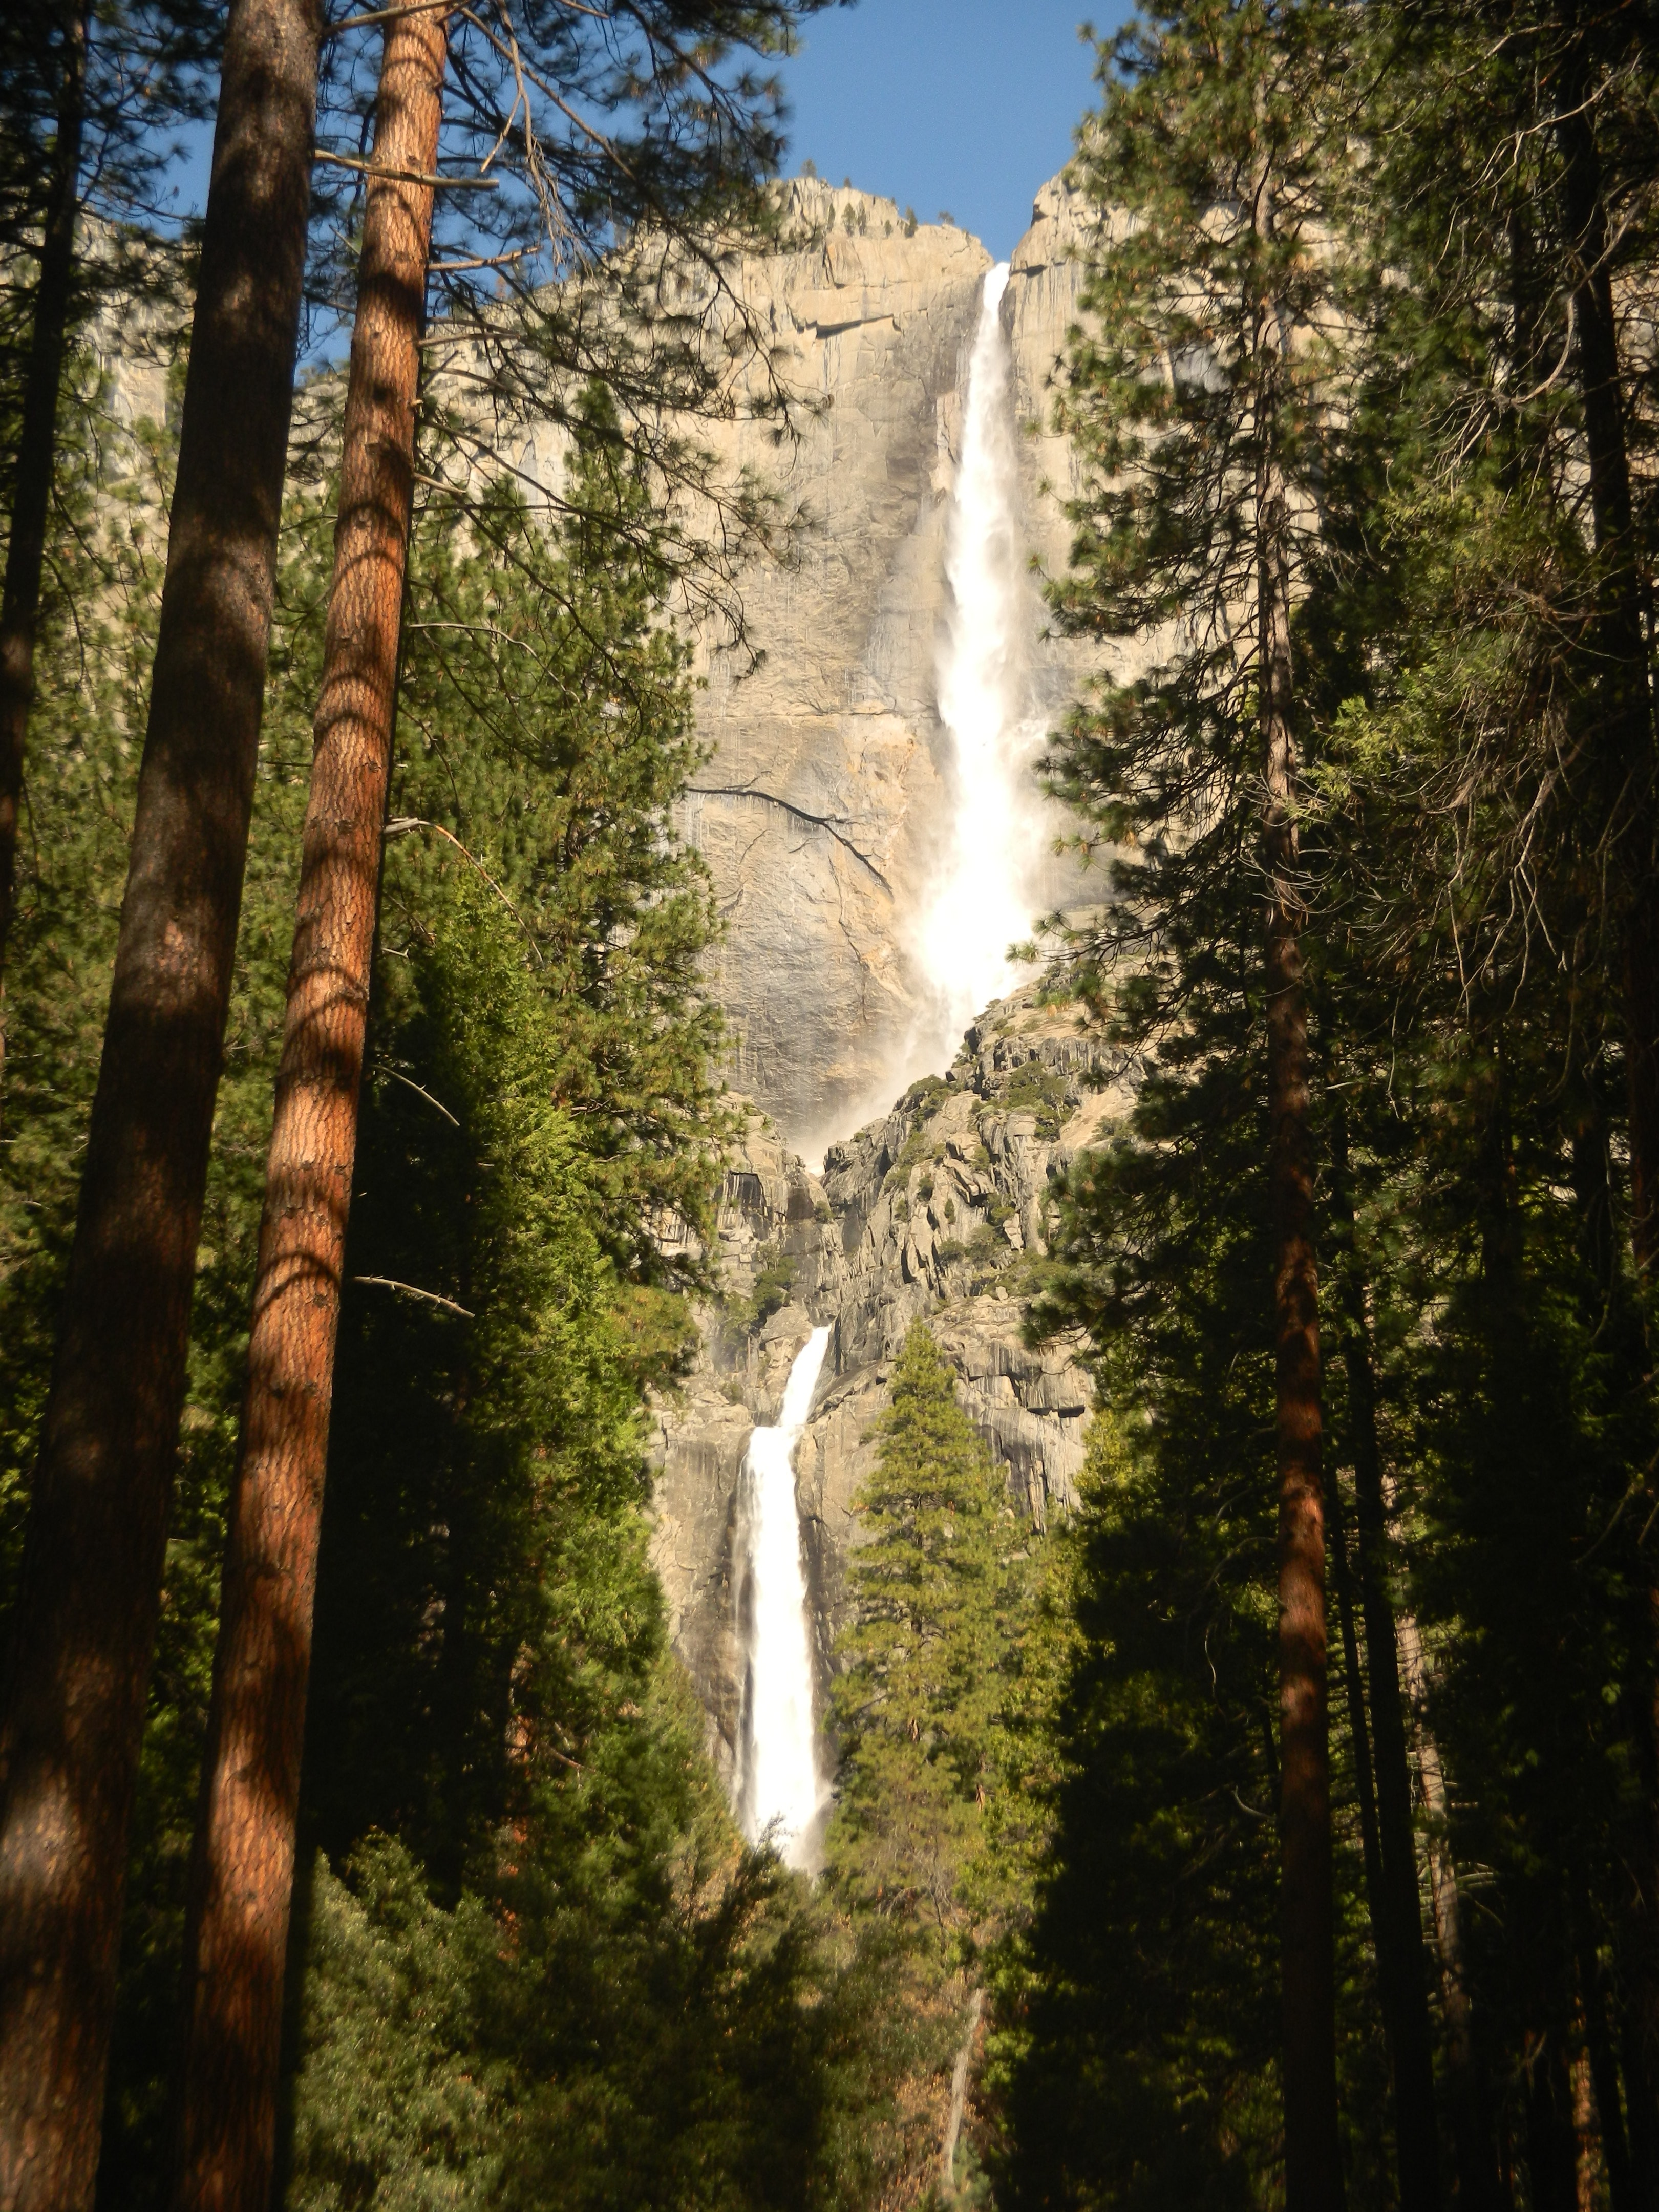 A look up at a waterfall pouring down a rocky mountain in Yosemite National Park